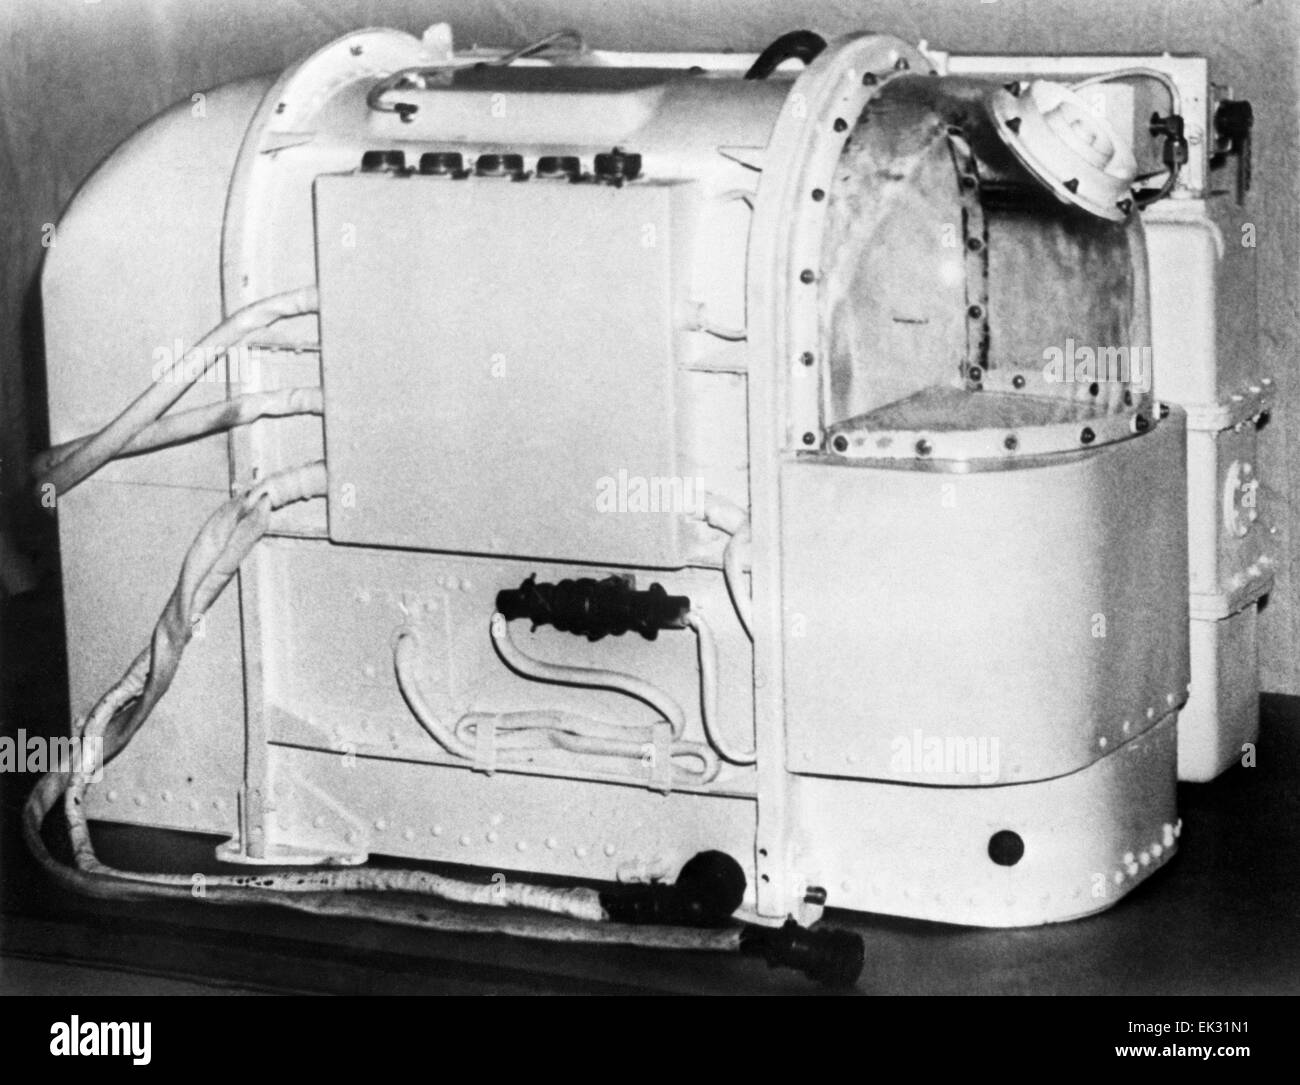 Moscow region. USSR. An animal container installed on the satellite Kosmos-110. Reproduction. - Stock Image